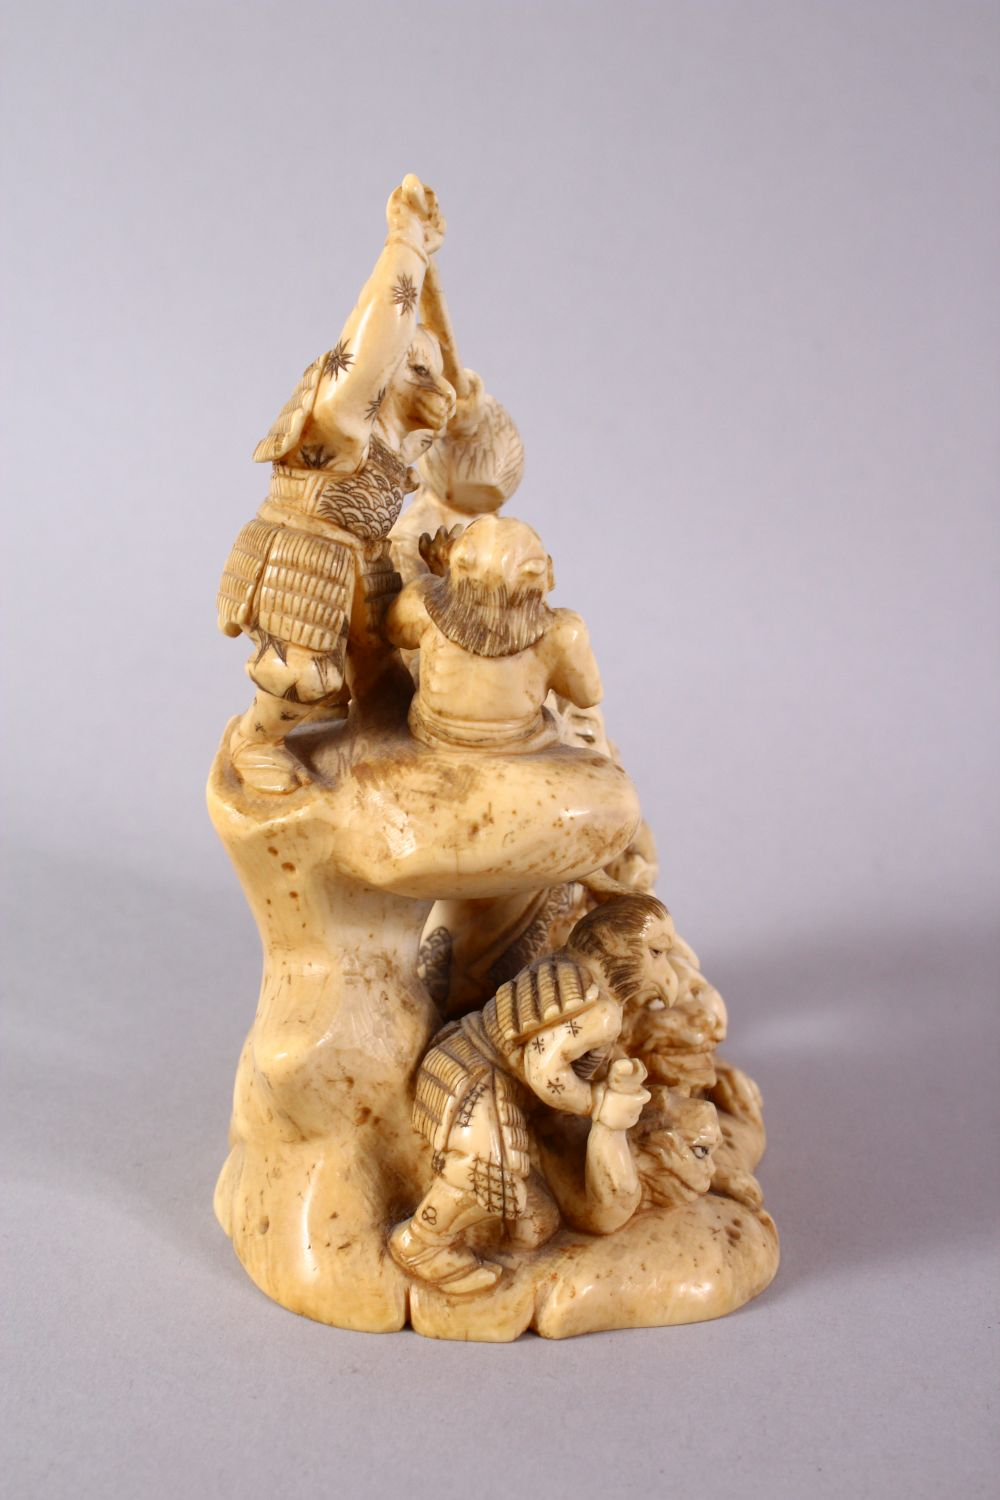 A JAPANESE MEIJI PERIOD CARVED IVORY OKIMONO GROUP - depicting figures attacking oni demons, one dog - Image 3 of 14